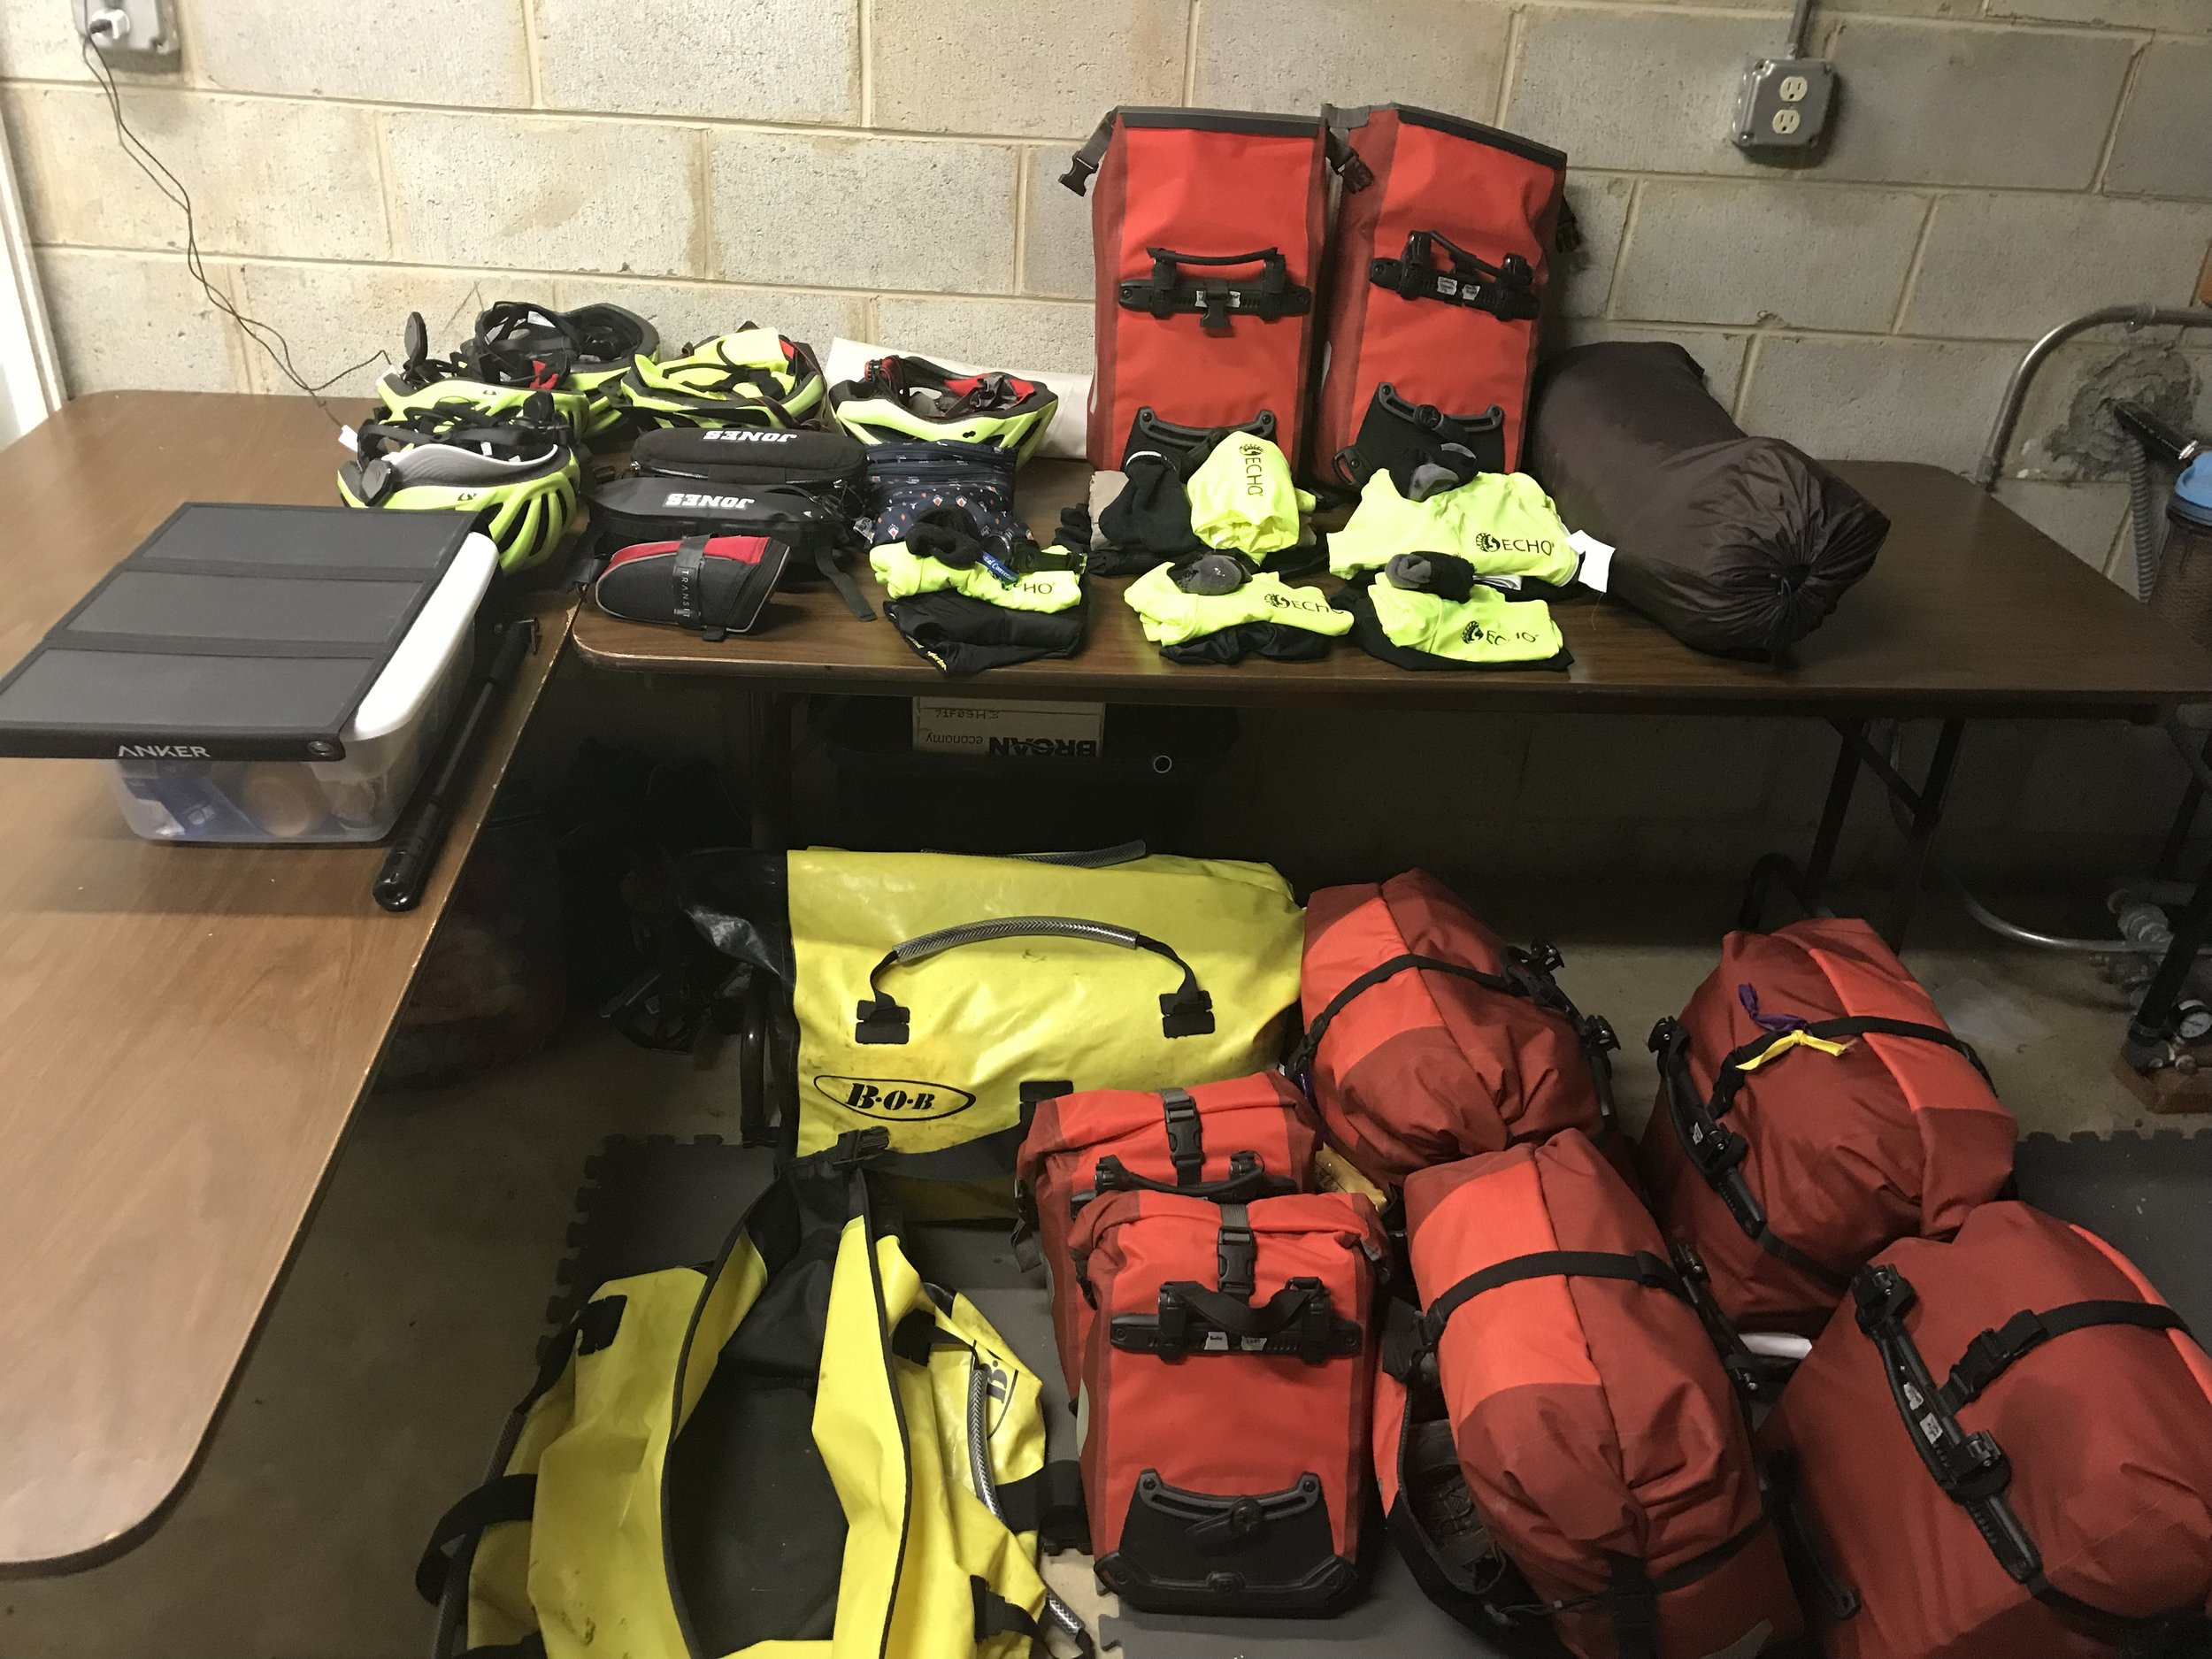 Here is our revamped gear. Look at that EMPTY (yellow/black) dry bag that WOULD go in our 2nd trailer!! Can anyone guess what the flat, black contraption is on the left (sitting on top of the plastic food container)? Feel free to guess and/or make comments in the comments section.